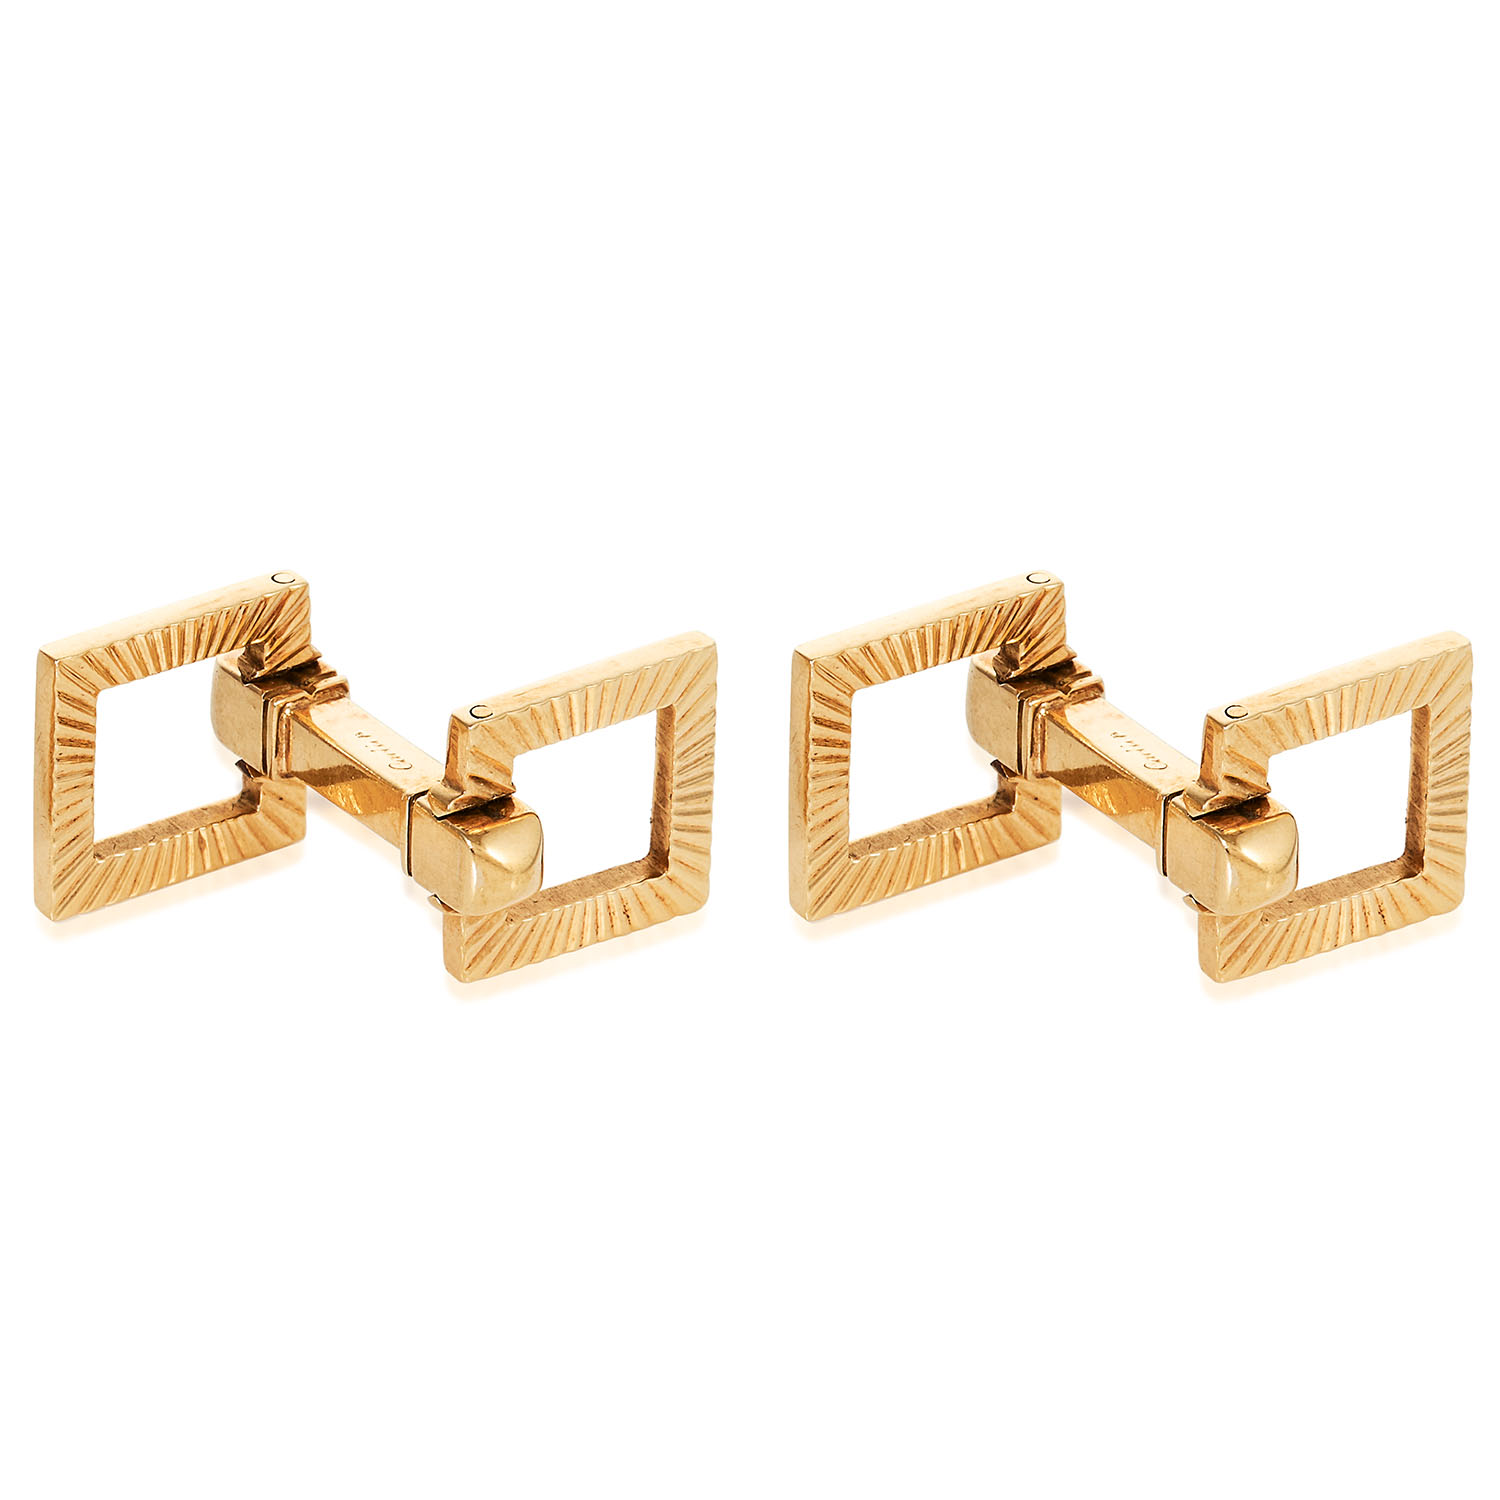 A PAIR OF VINTAGE CUFFLINKS, CARTIER in 18ct yellow gold, with textured square links connected by